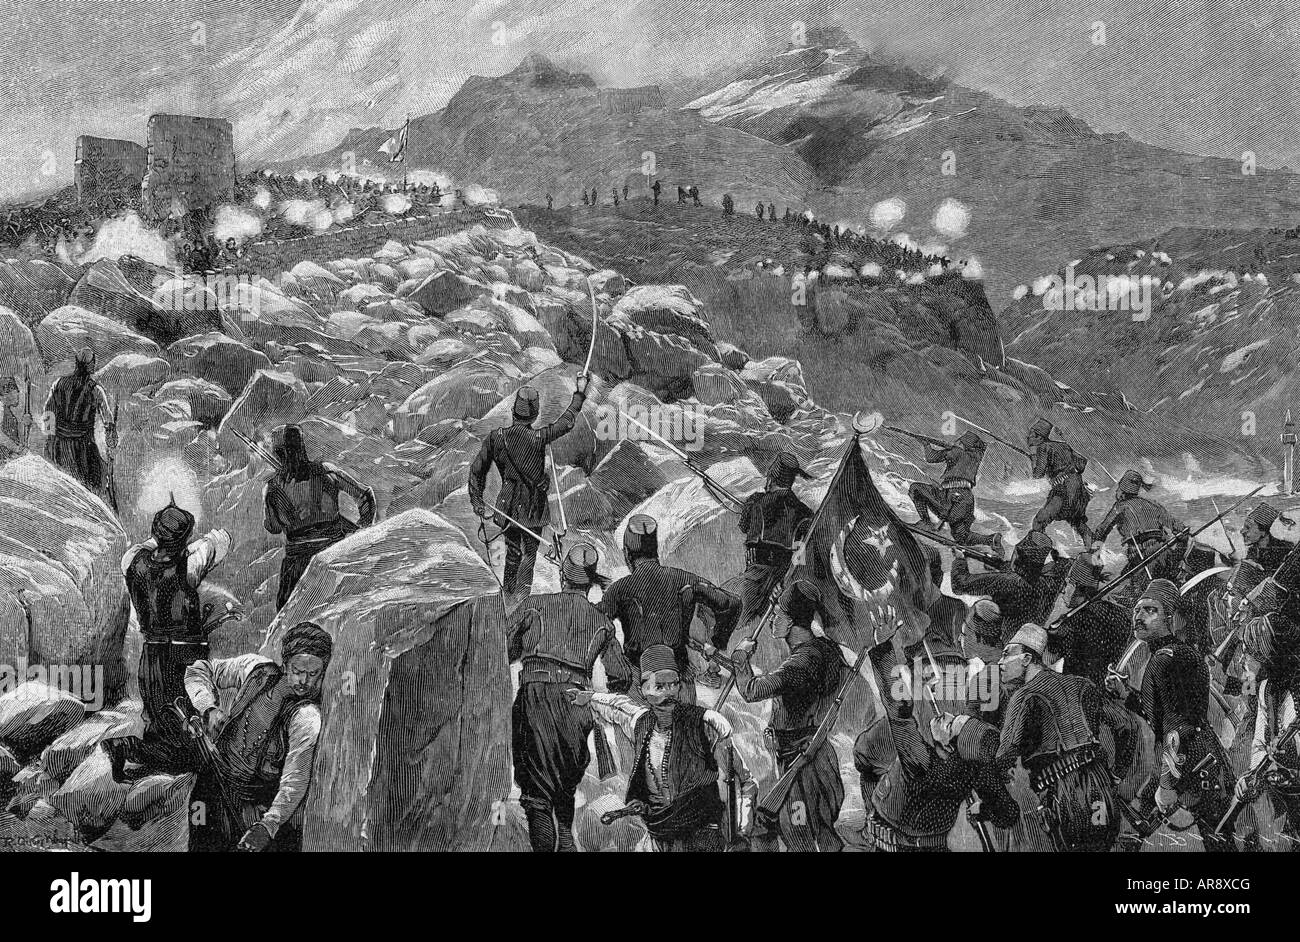 events, Cretian Insurrection 1896 - 1897, Turkish soldiers attacking a Cretian position, wood engraving, 1897, Crete, - Stock Image